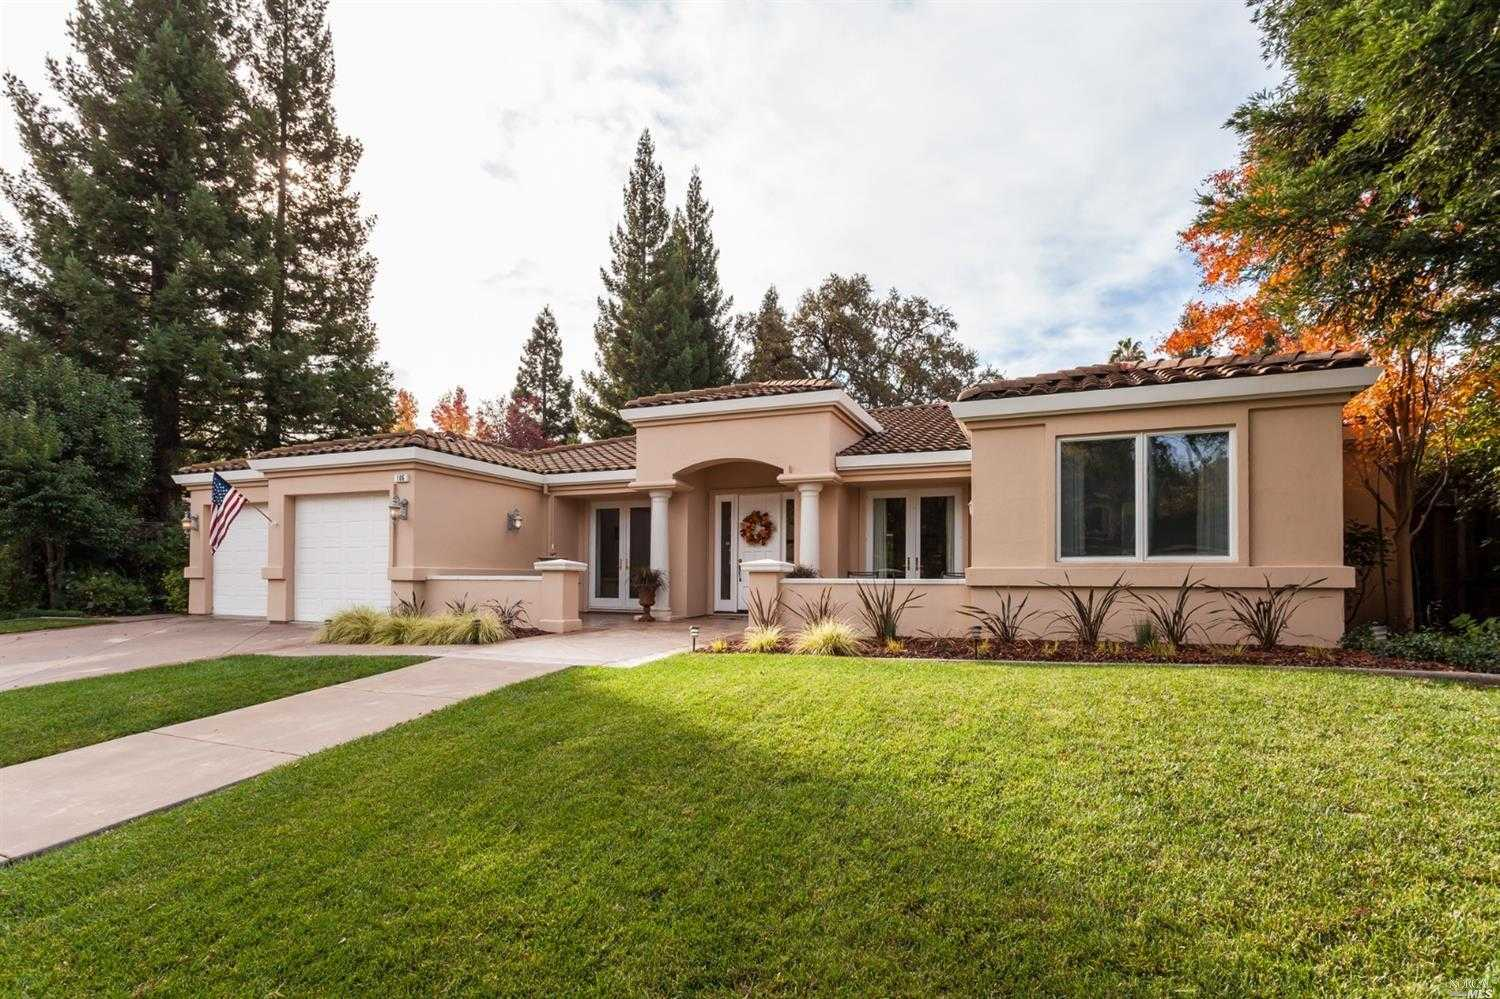 $885,000 - 3Br/3Ba -  for Sale in Vacaville